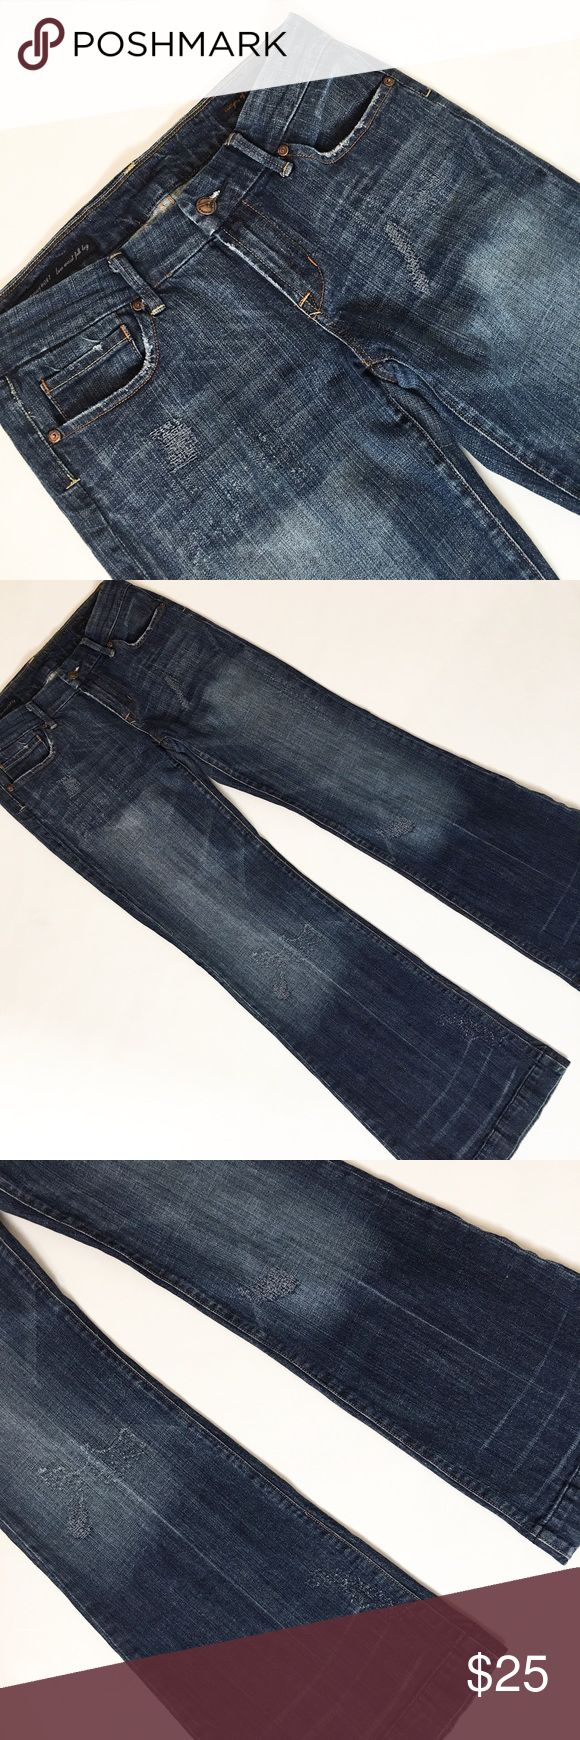 """Citizens for Humanity Dunaway Stretch Jeans Citizens for Humanity Dunaway #087 Stretch Low Waist Full Leg Jeans. Size 30. Some wear at hem, butt, and pockets --- some intentional wear/material distress. 8 1/4"""" rise, 41"""" length, 31"""" inseam. Garment measurements taken laying flat without stretching. Citizens of Humanity Jeans Flare & Wide Leg"""